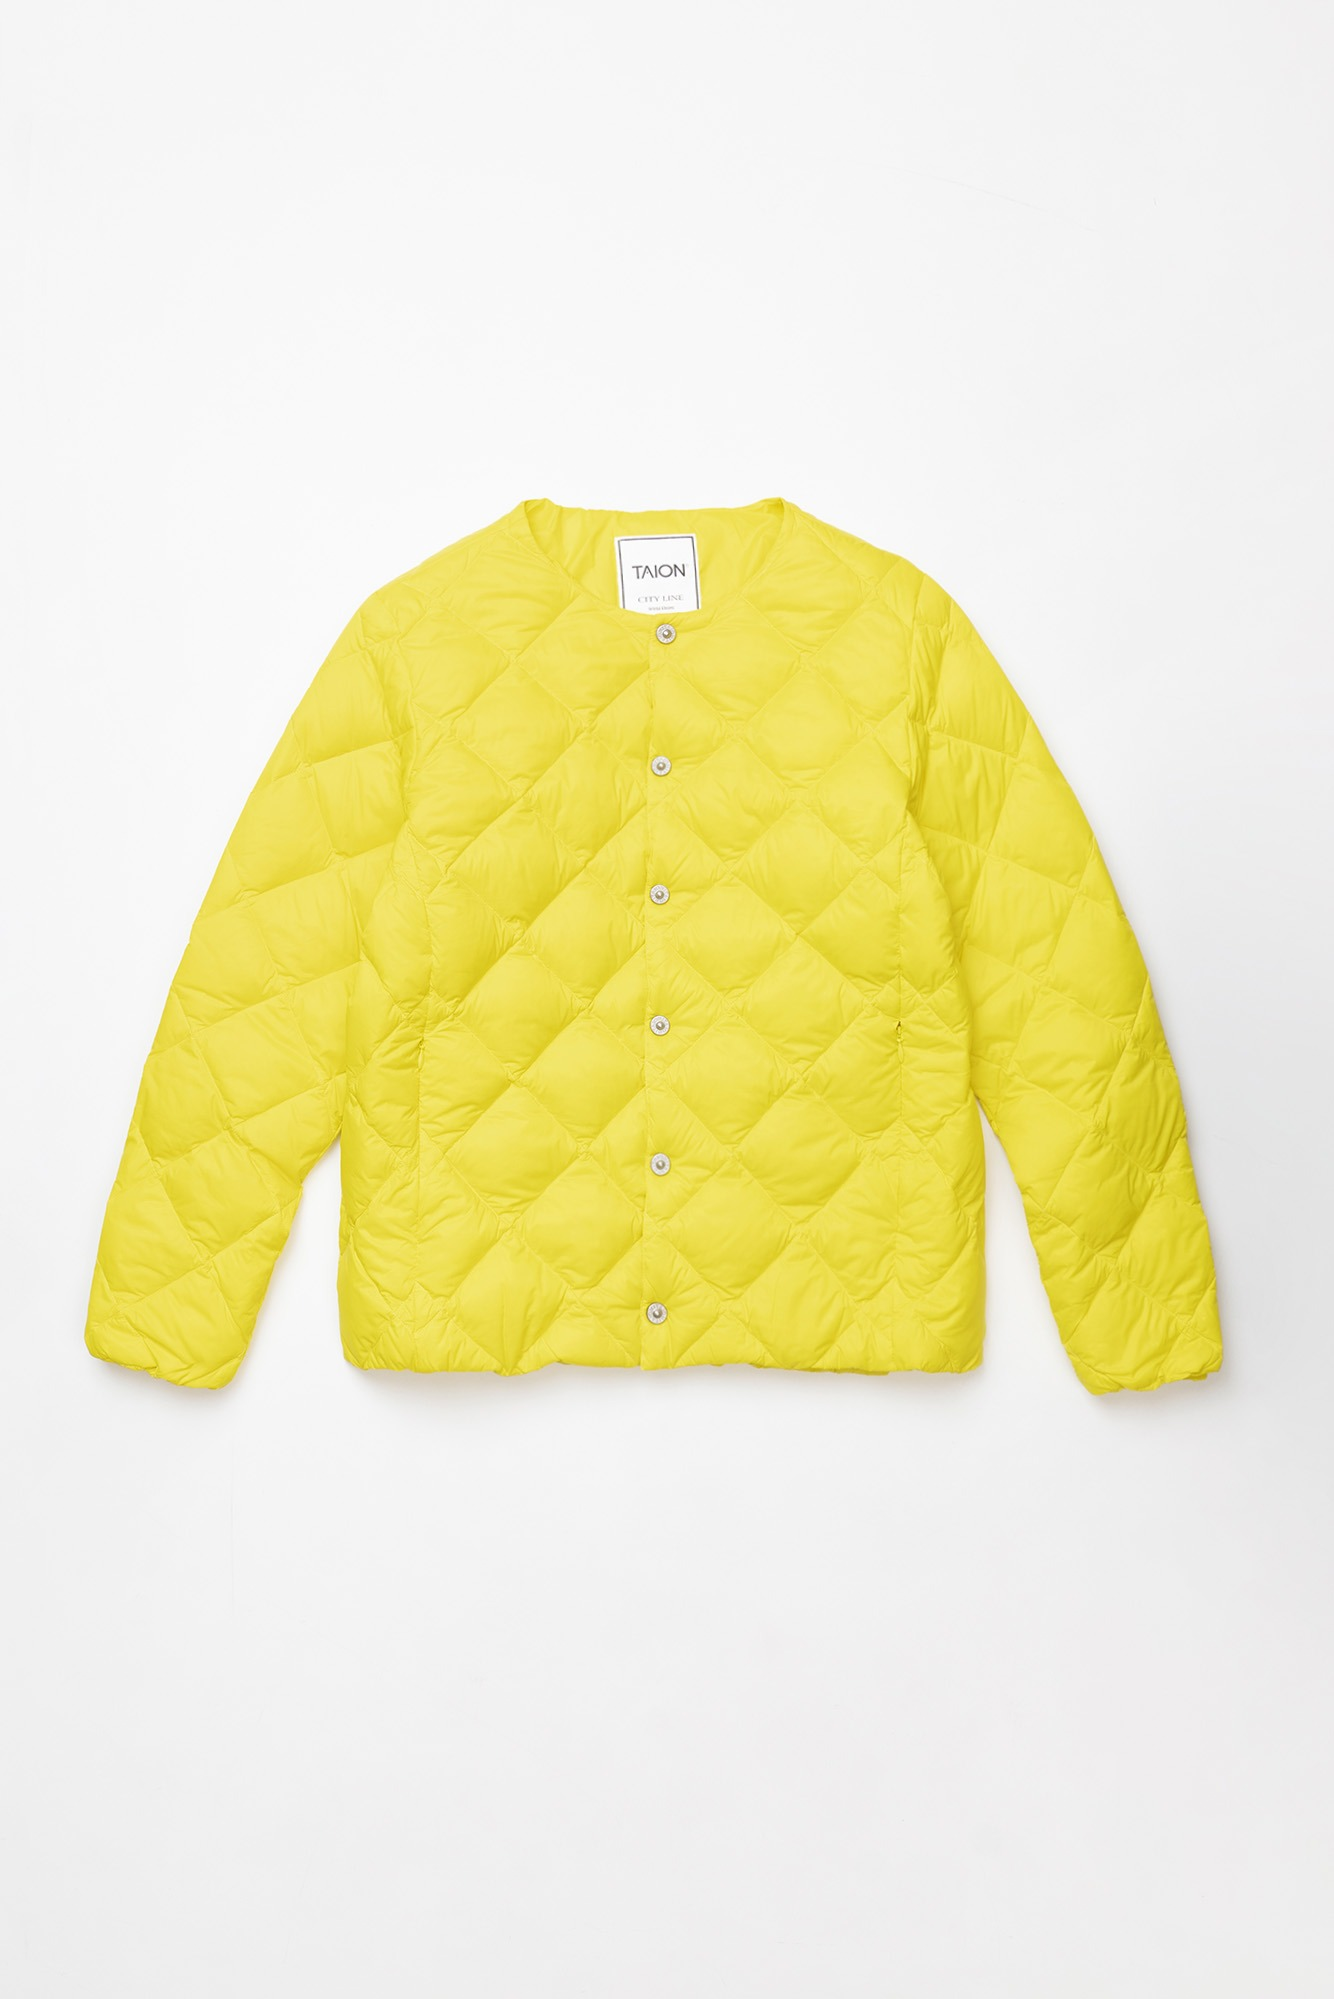 "TAION Crew Neck Down Jacket ""Yellow"""